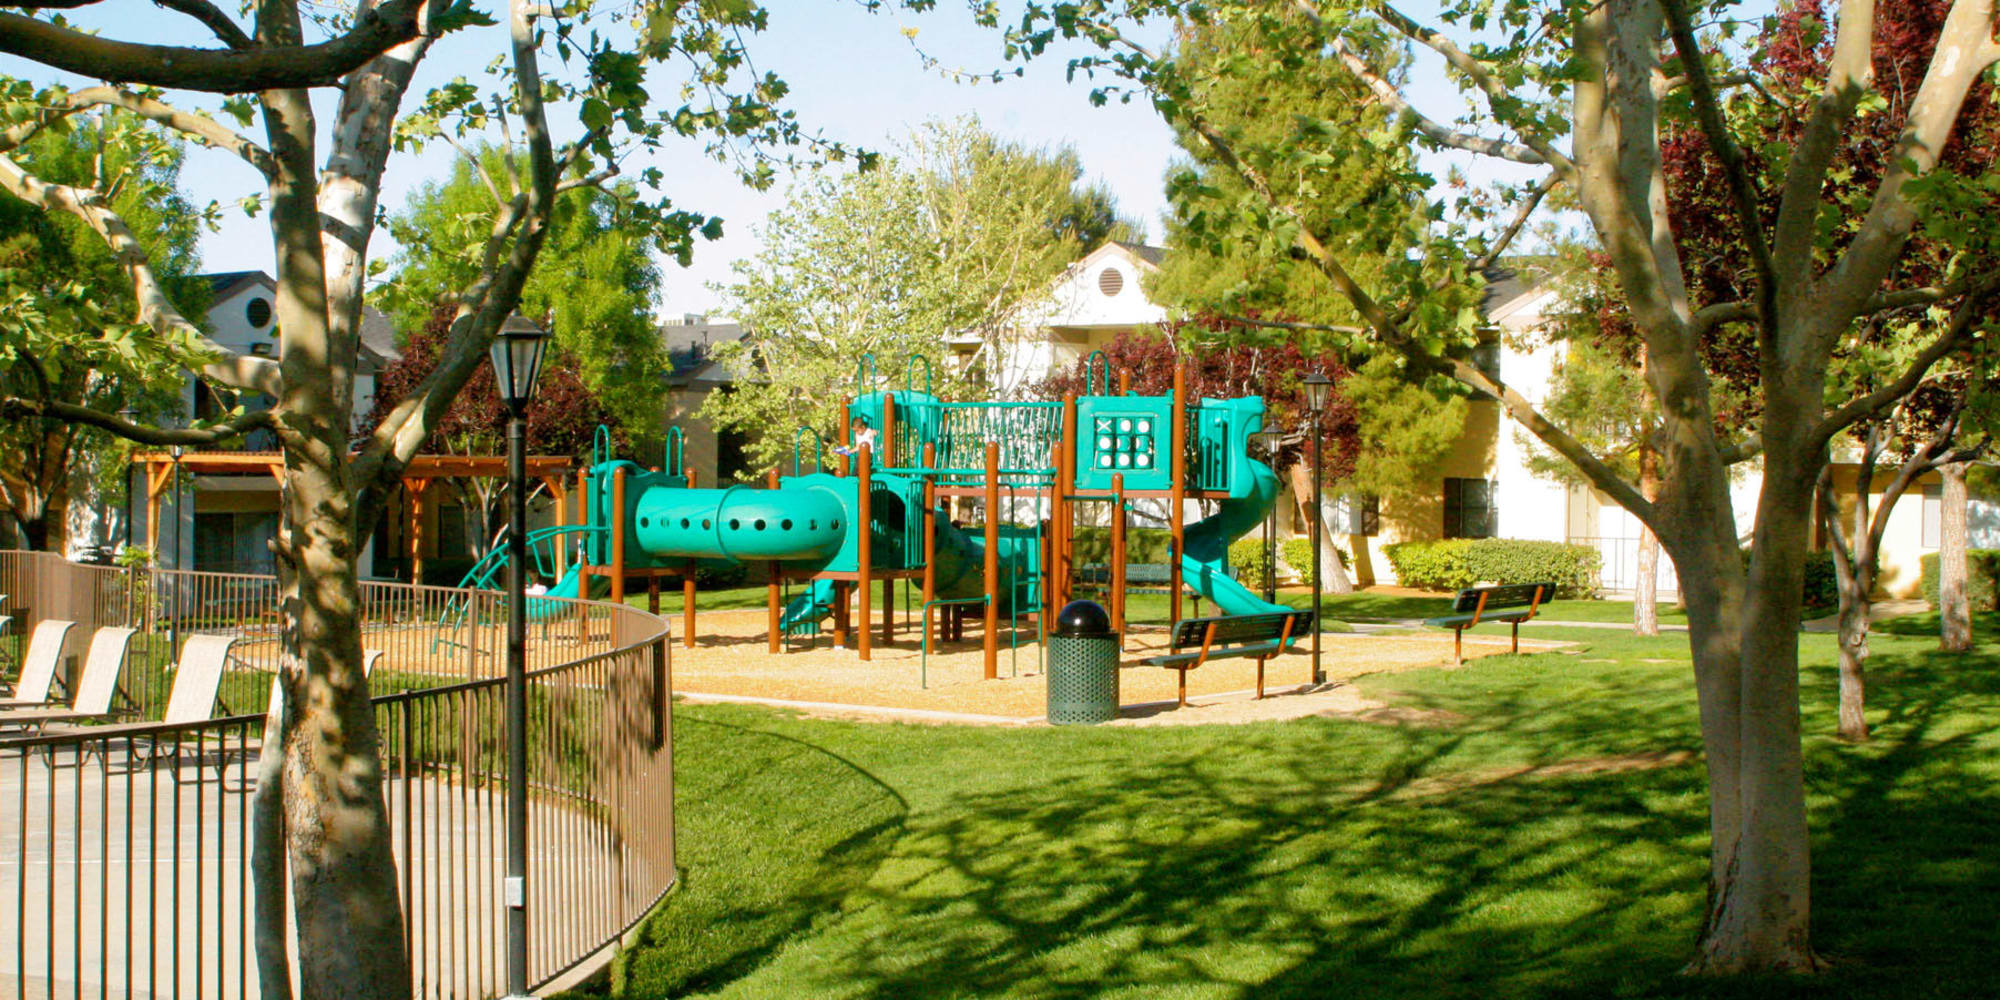 Children's playground surrounded by green grass and leafy trees at Mountain Vista in Victorville, California